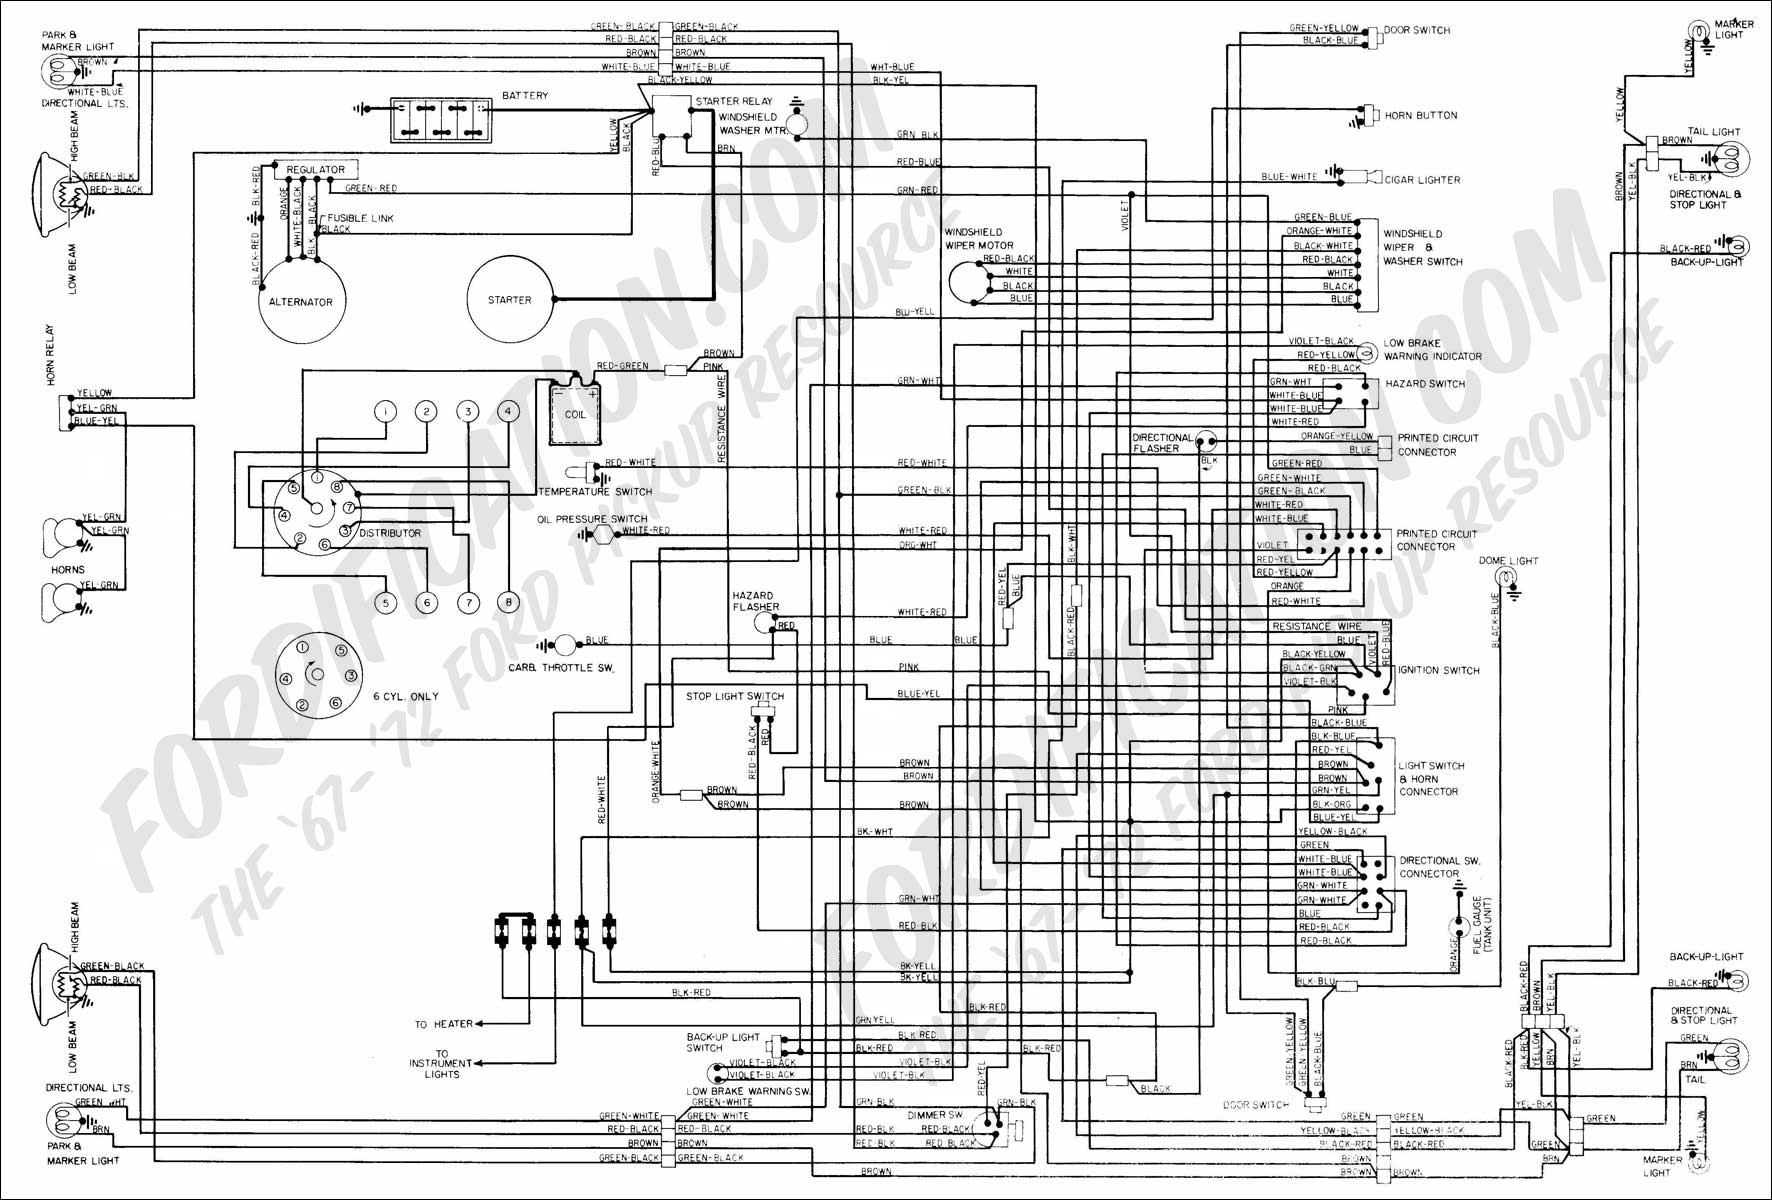 2015 Ford F150 Wiring Diagram Preview For A Trailer Hook Up Schematic Data Rh 12 17 14 Reisen Fuer Meister De F 150 Plug